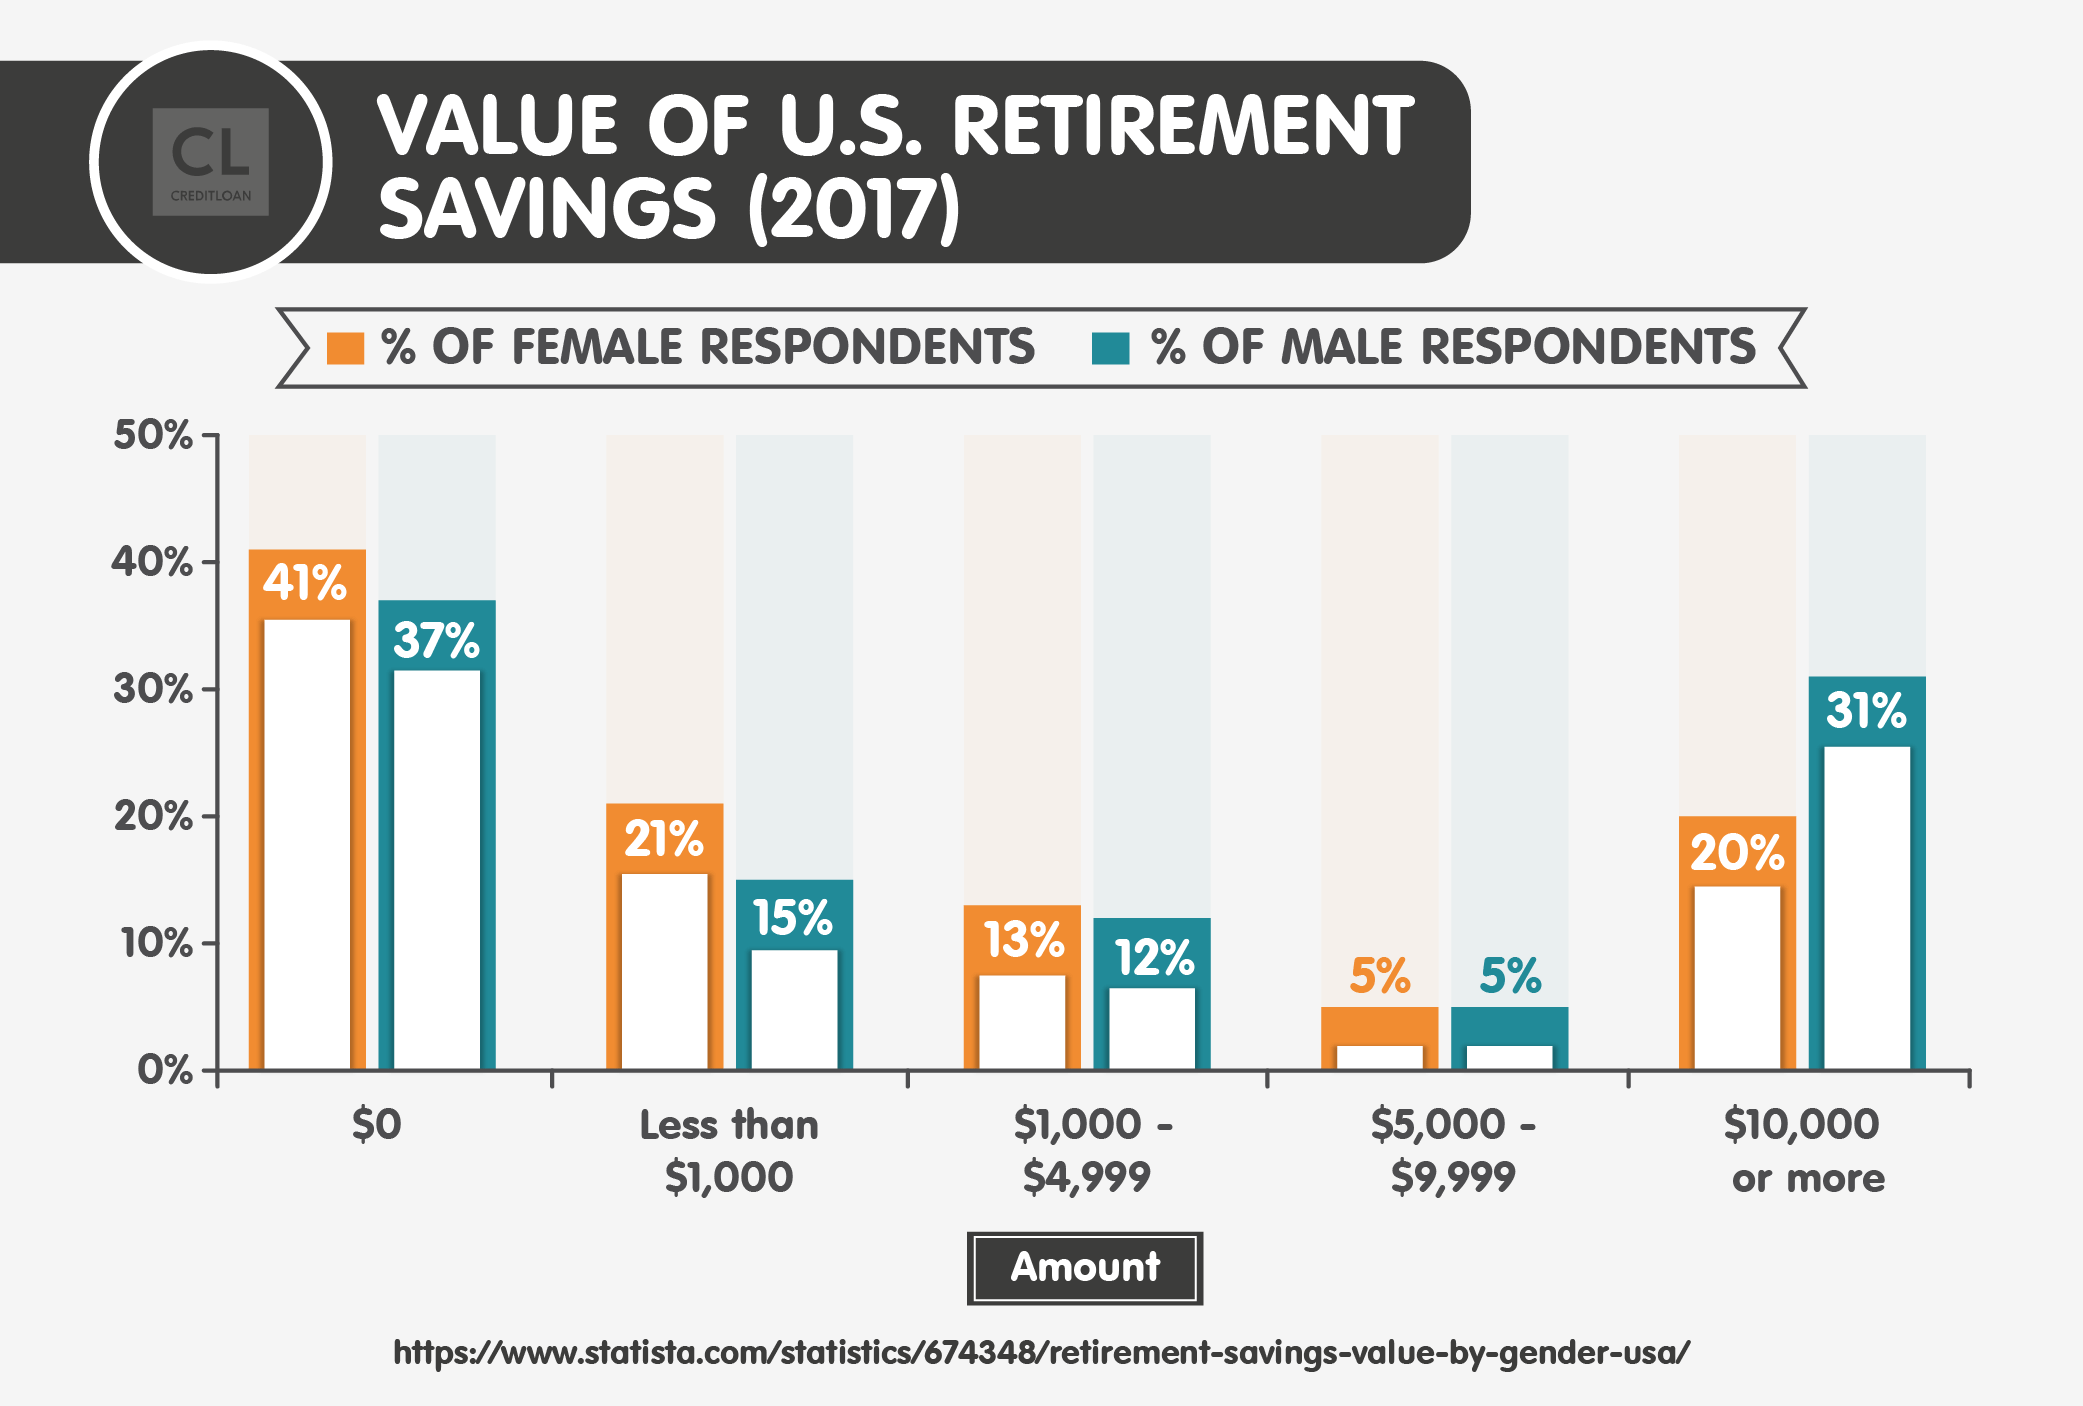 Value of U.S. Retirement Savings